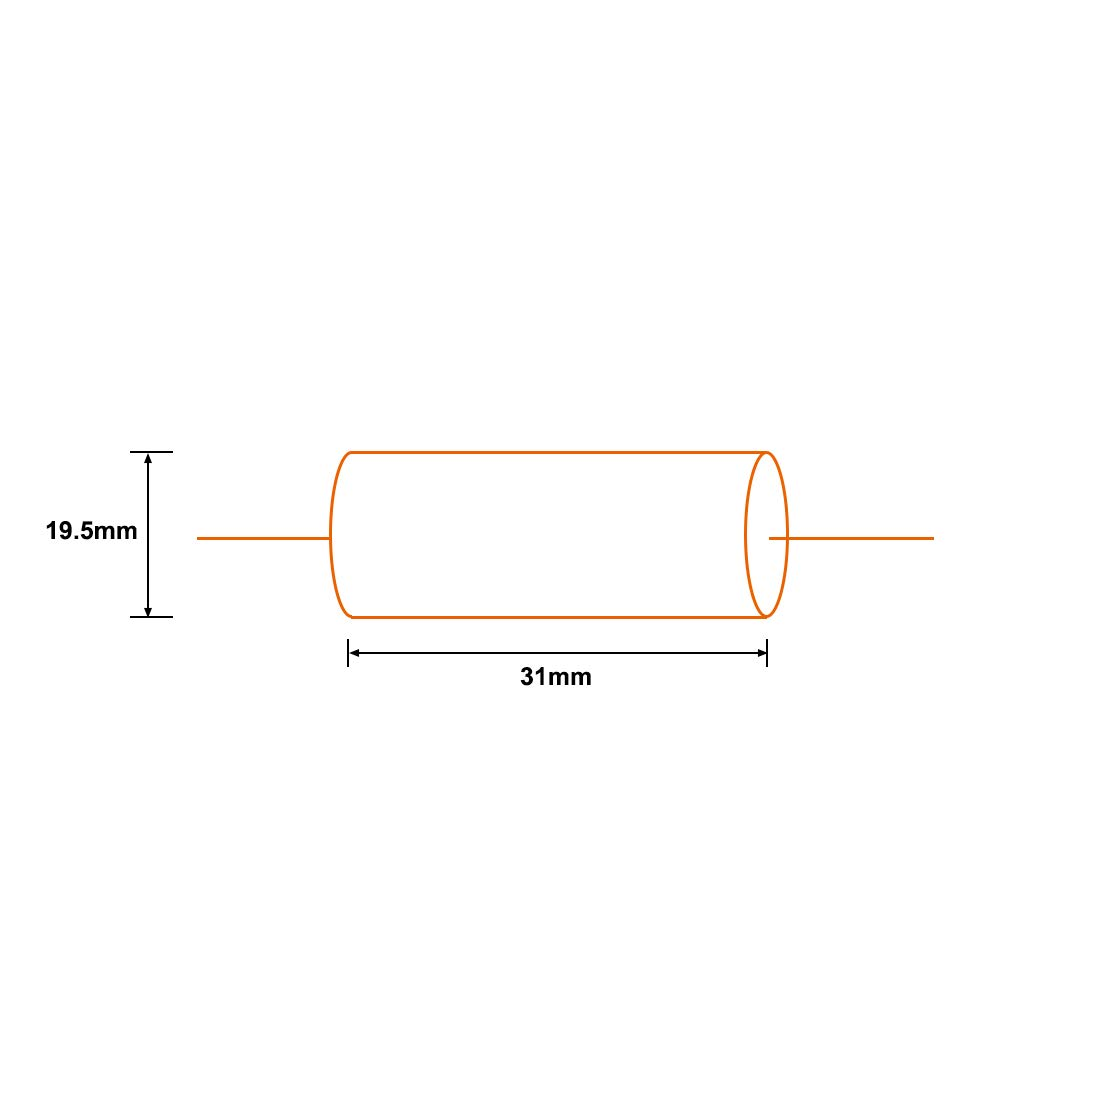 Pack of 3 Yellow uxcell Film Capacitor 100V DC 15uF Round Axial Polypropylene Film Capacitor for Audio Divider